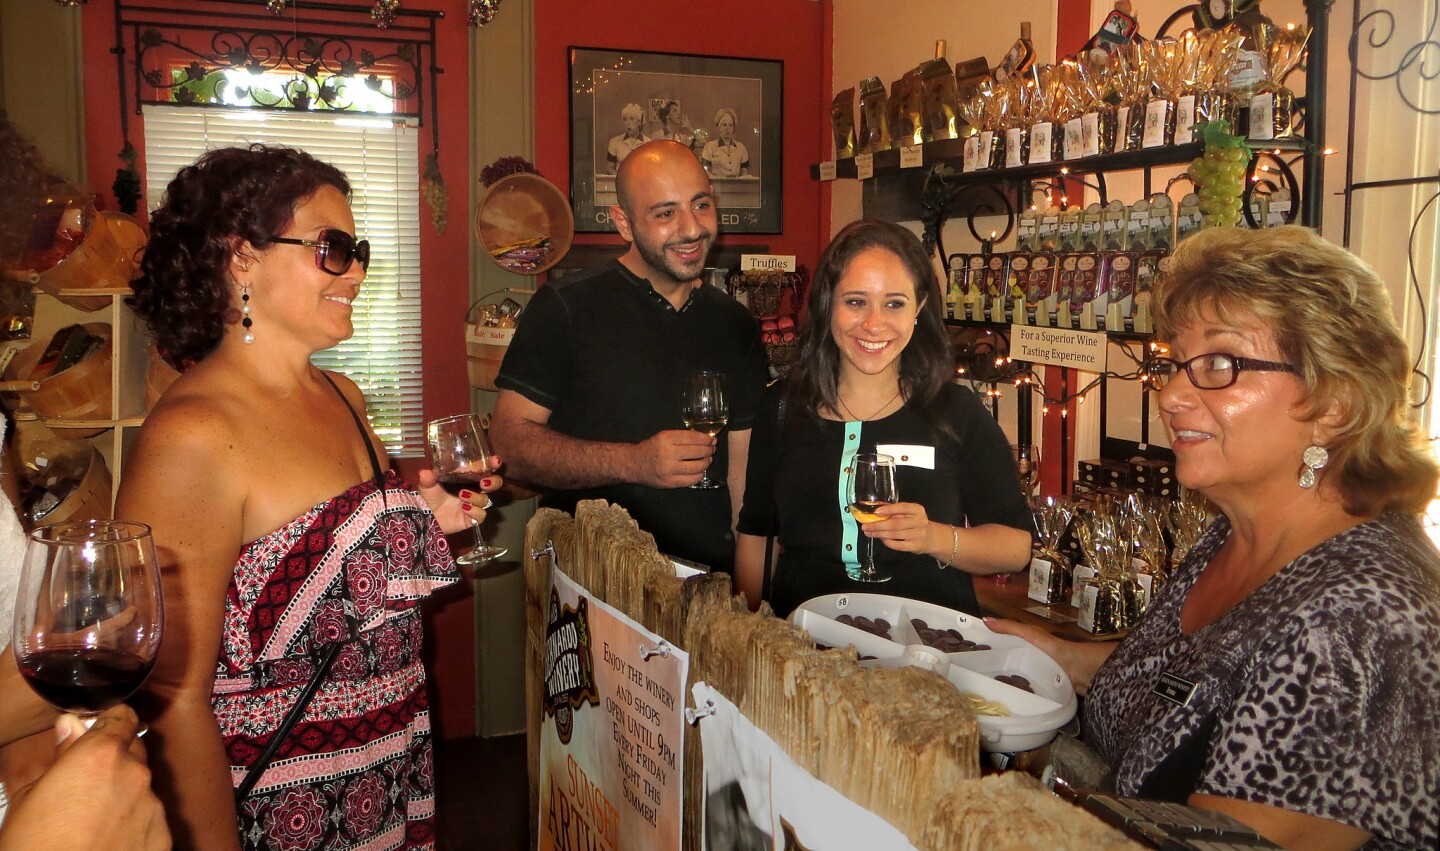 Lining up for free chocolate tastes at the Sweet Shoppe at Bernardo Winery in San Diego.